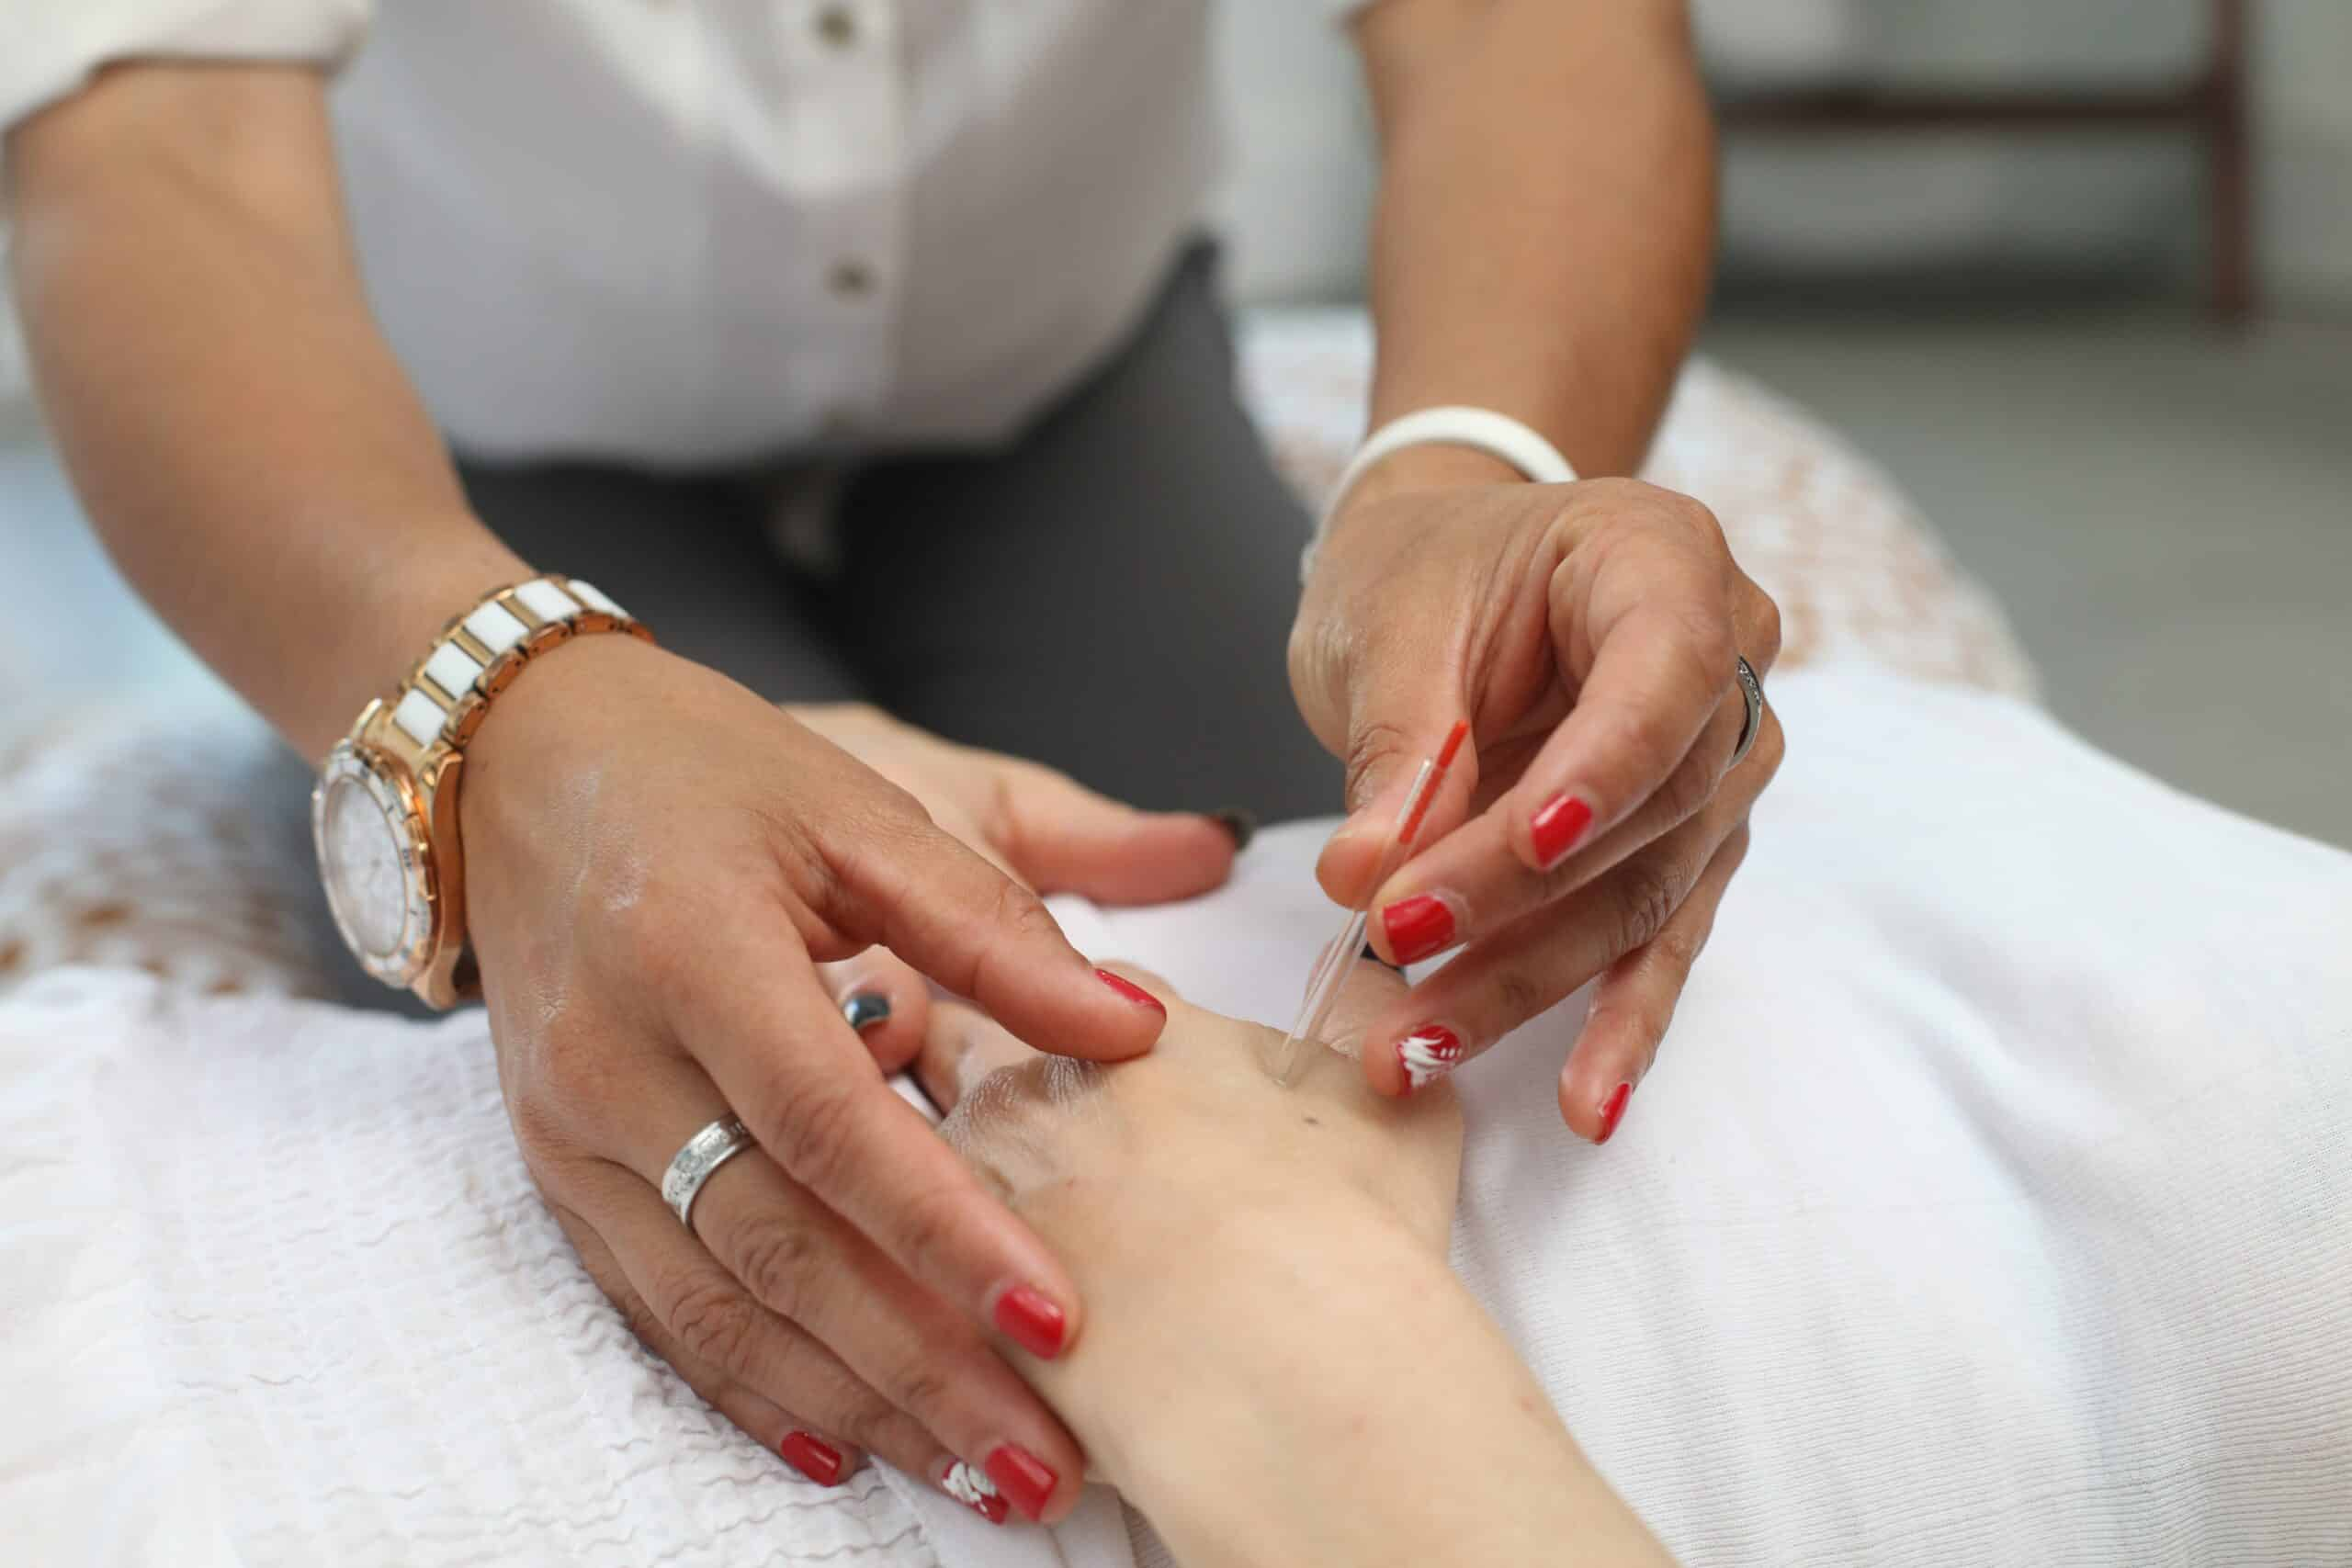 Acupuncture services at the medical clinic